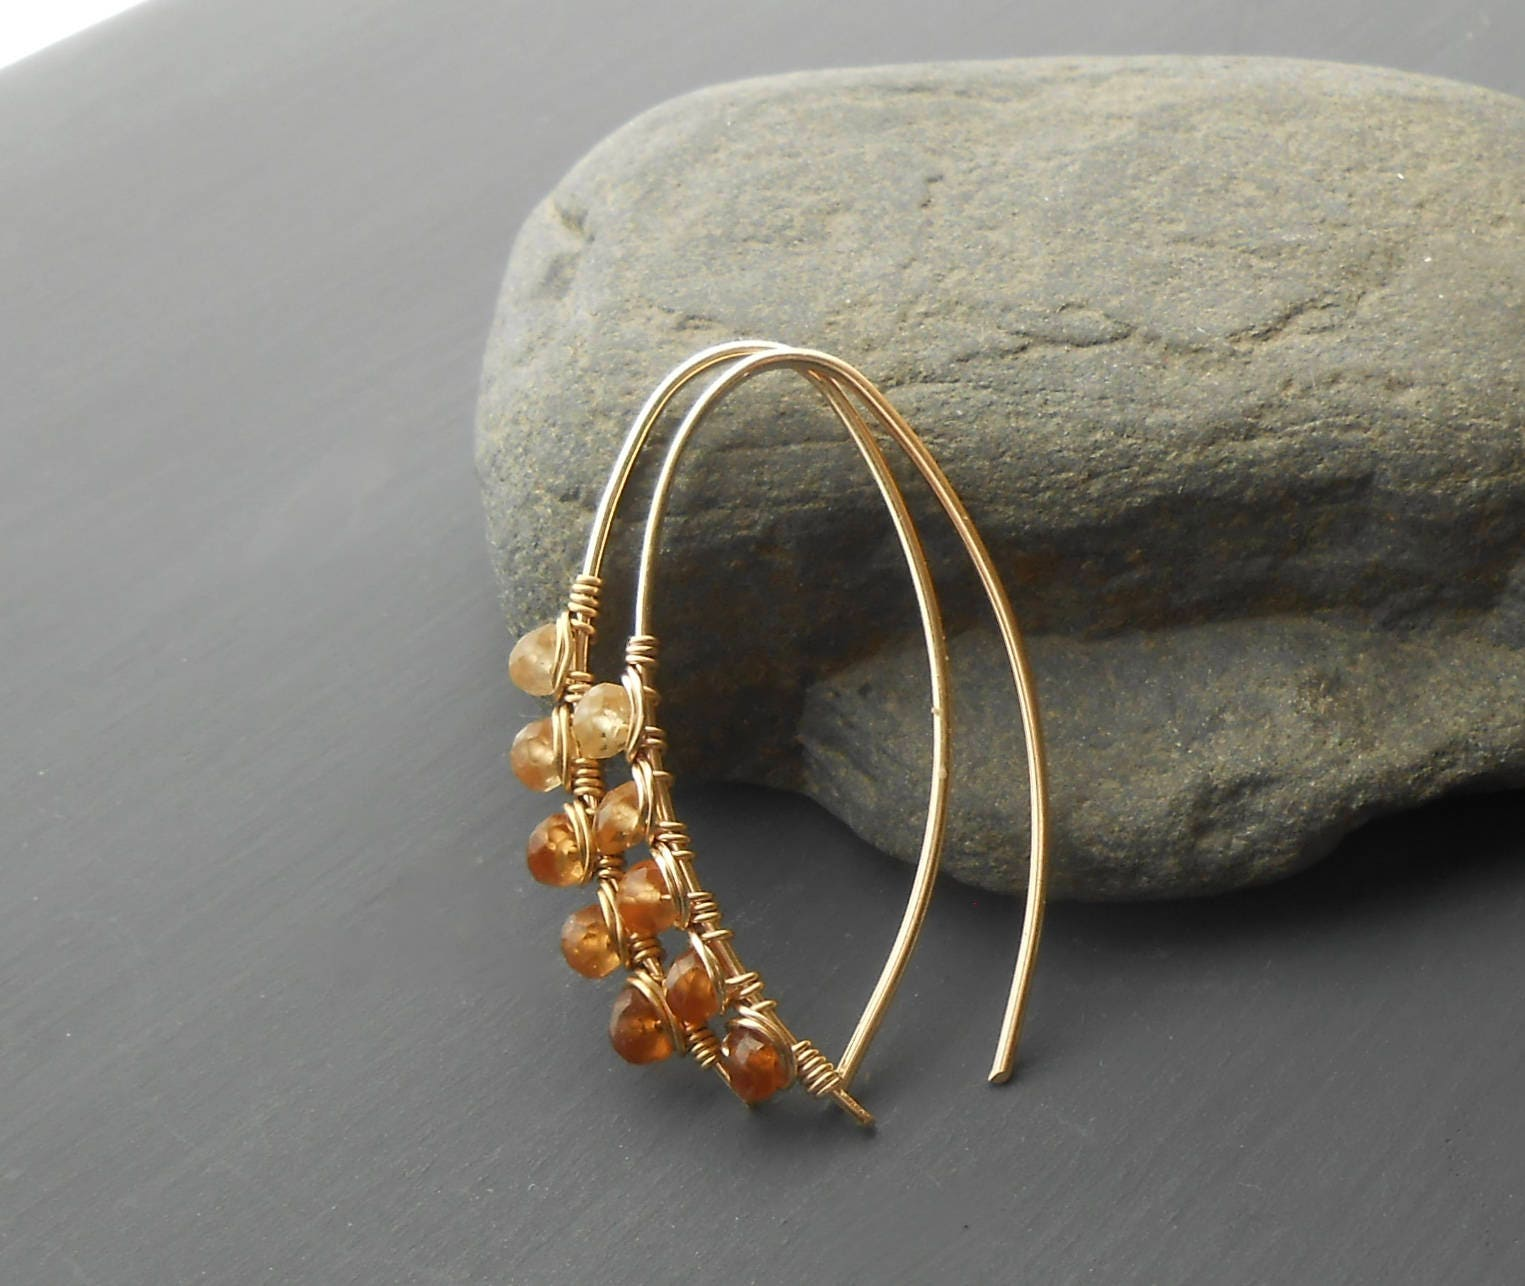 Gold Filled Wire Wrapped Gemstone Earrings, Hessonite Garnet